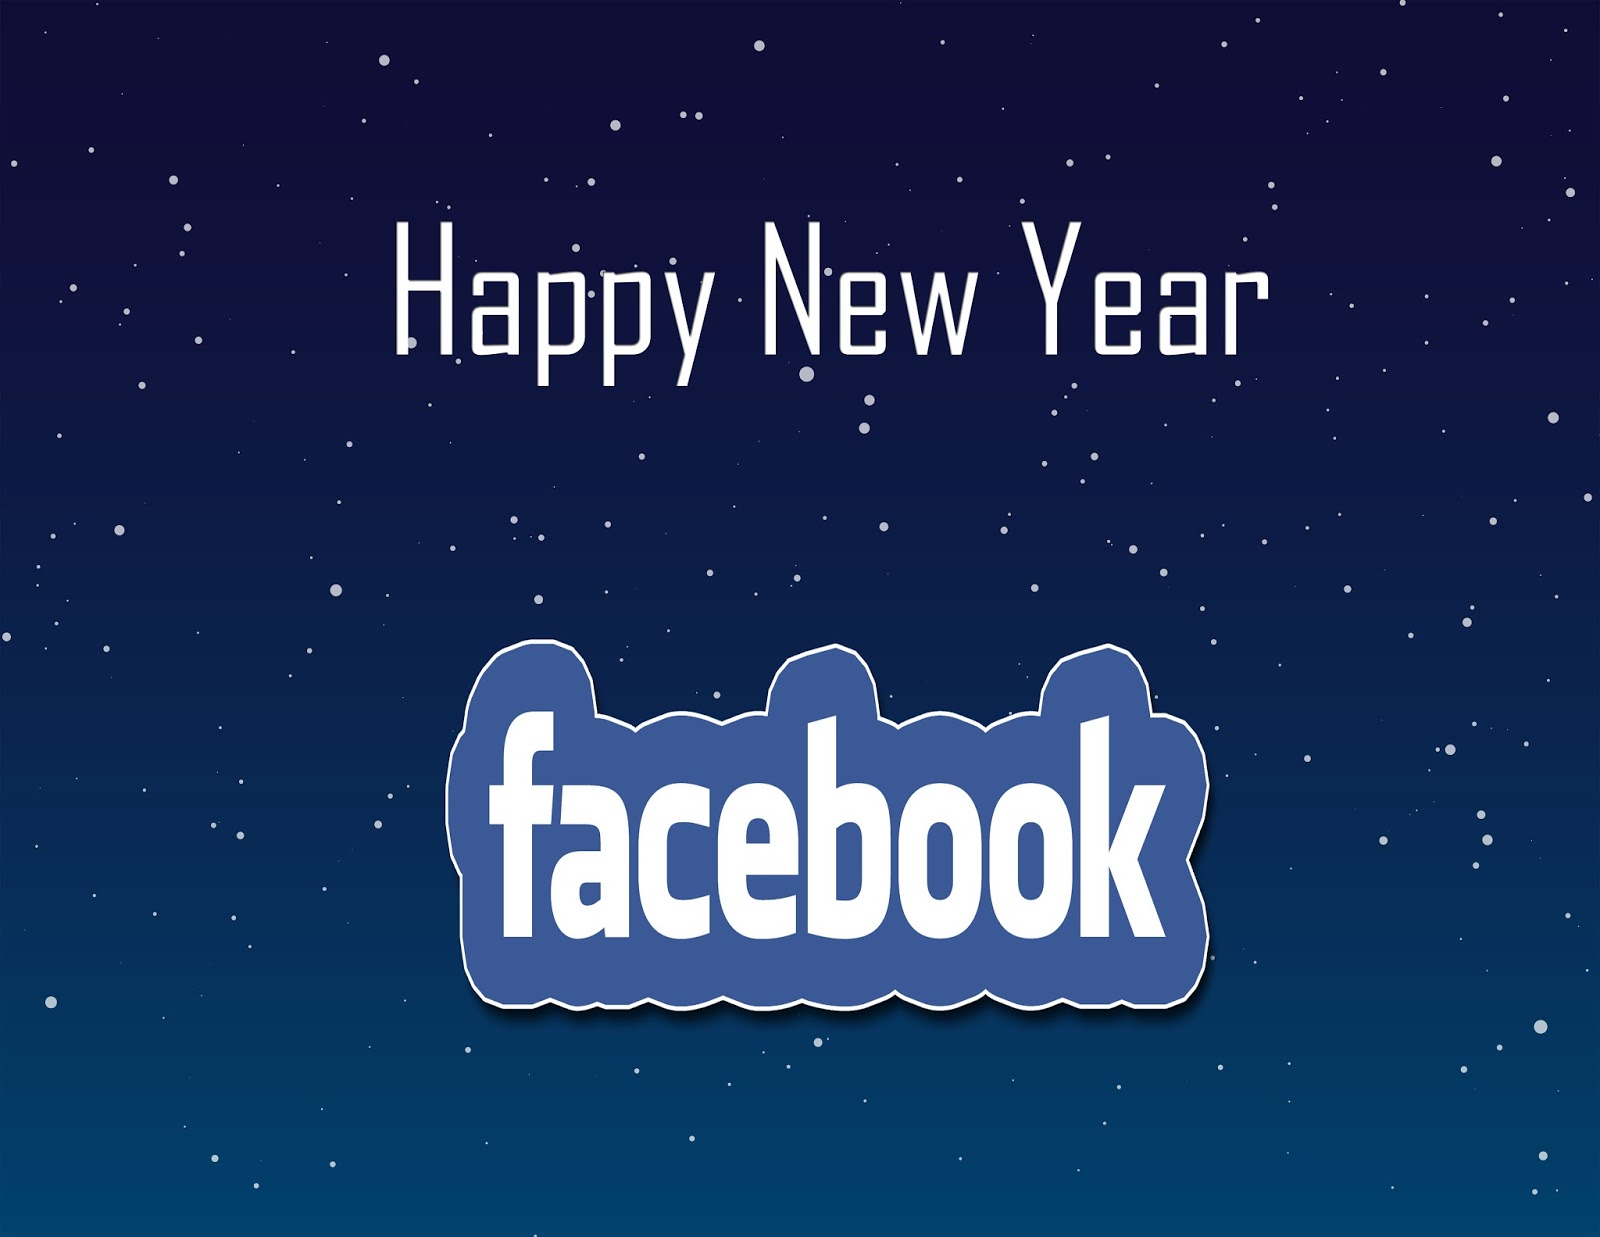 Happy New year facebook status - Happy New year Wishes